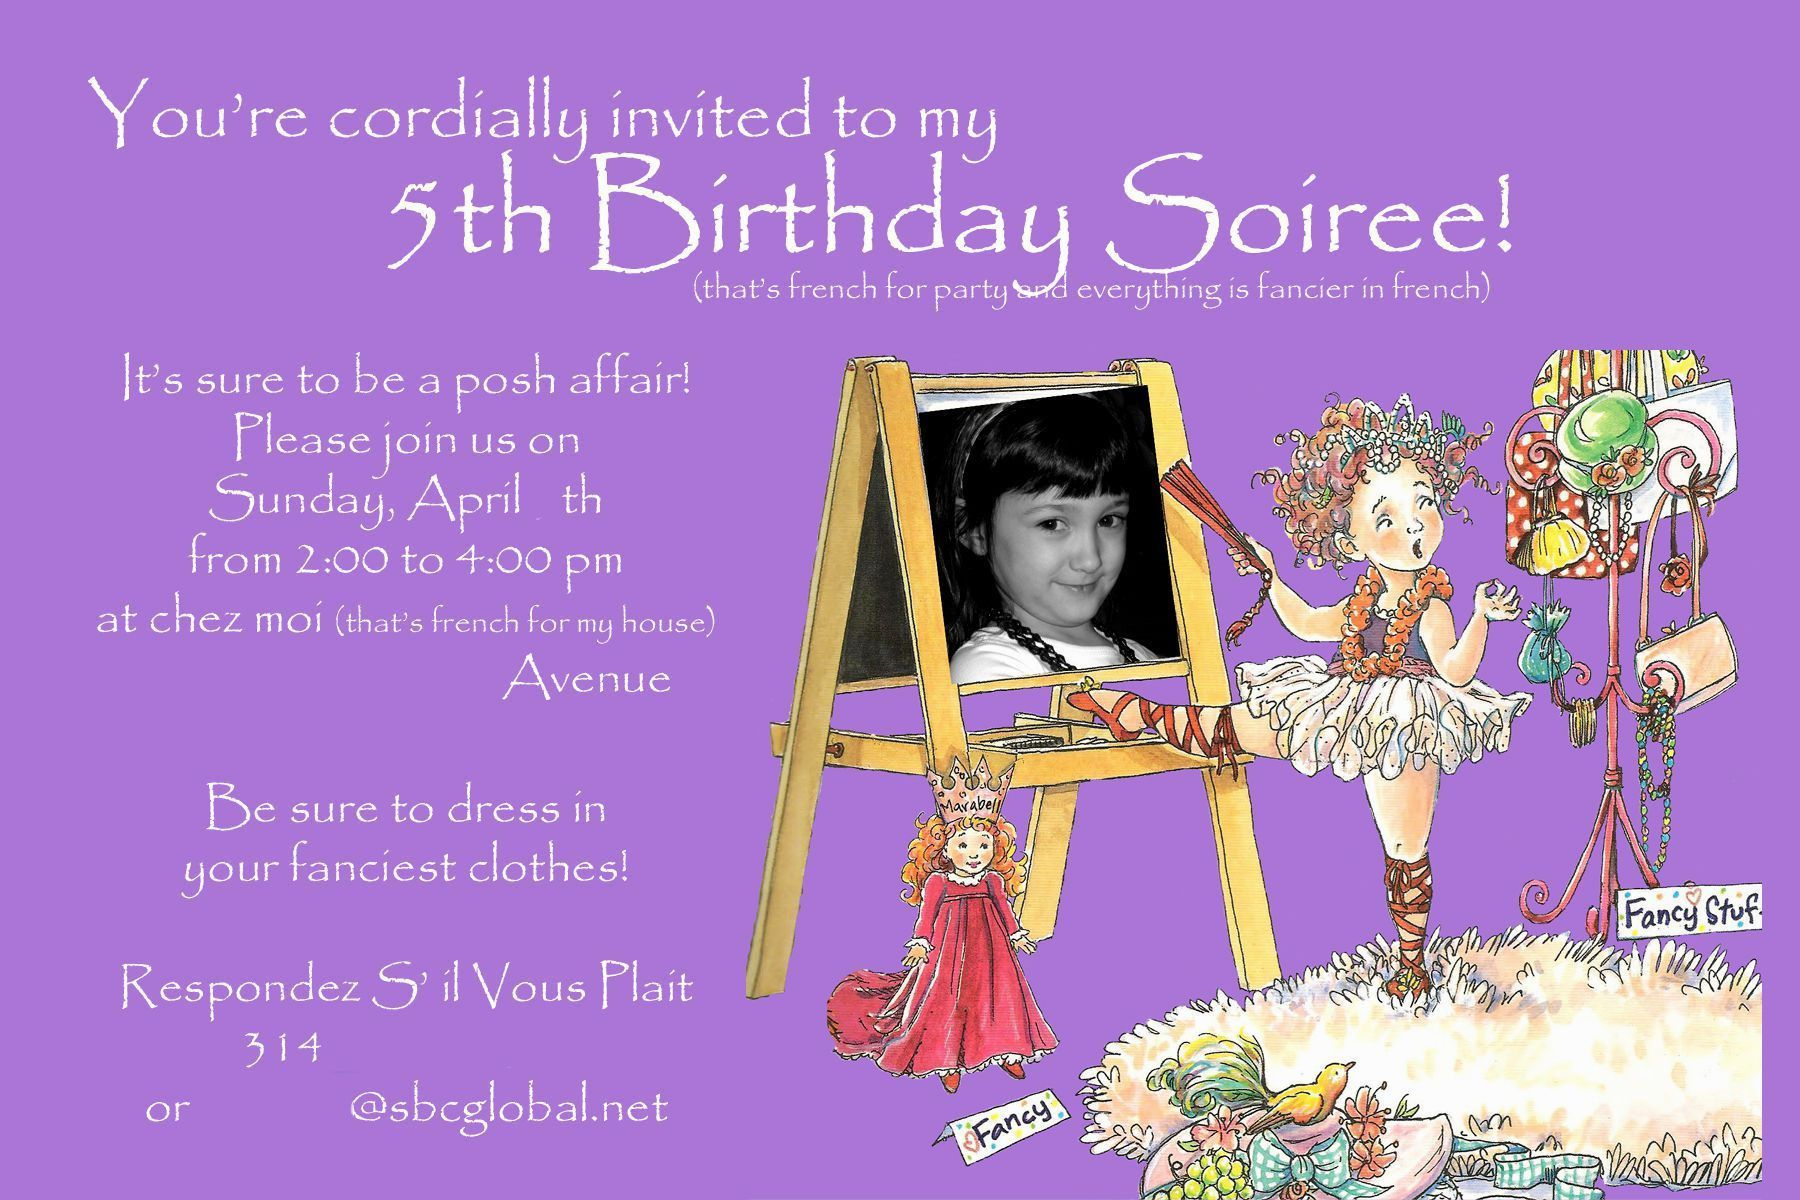 003 Staggering Free Online Birthday Invitation Card Maker With Photo High Resolution  1stFull